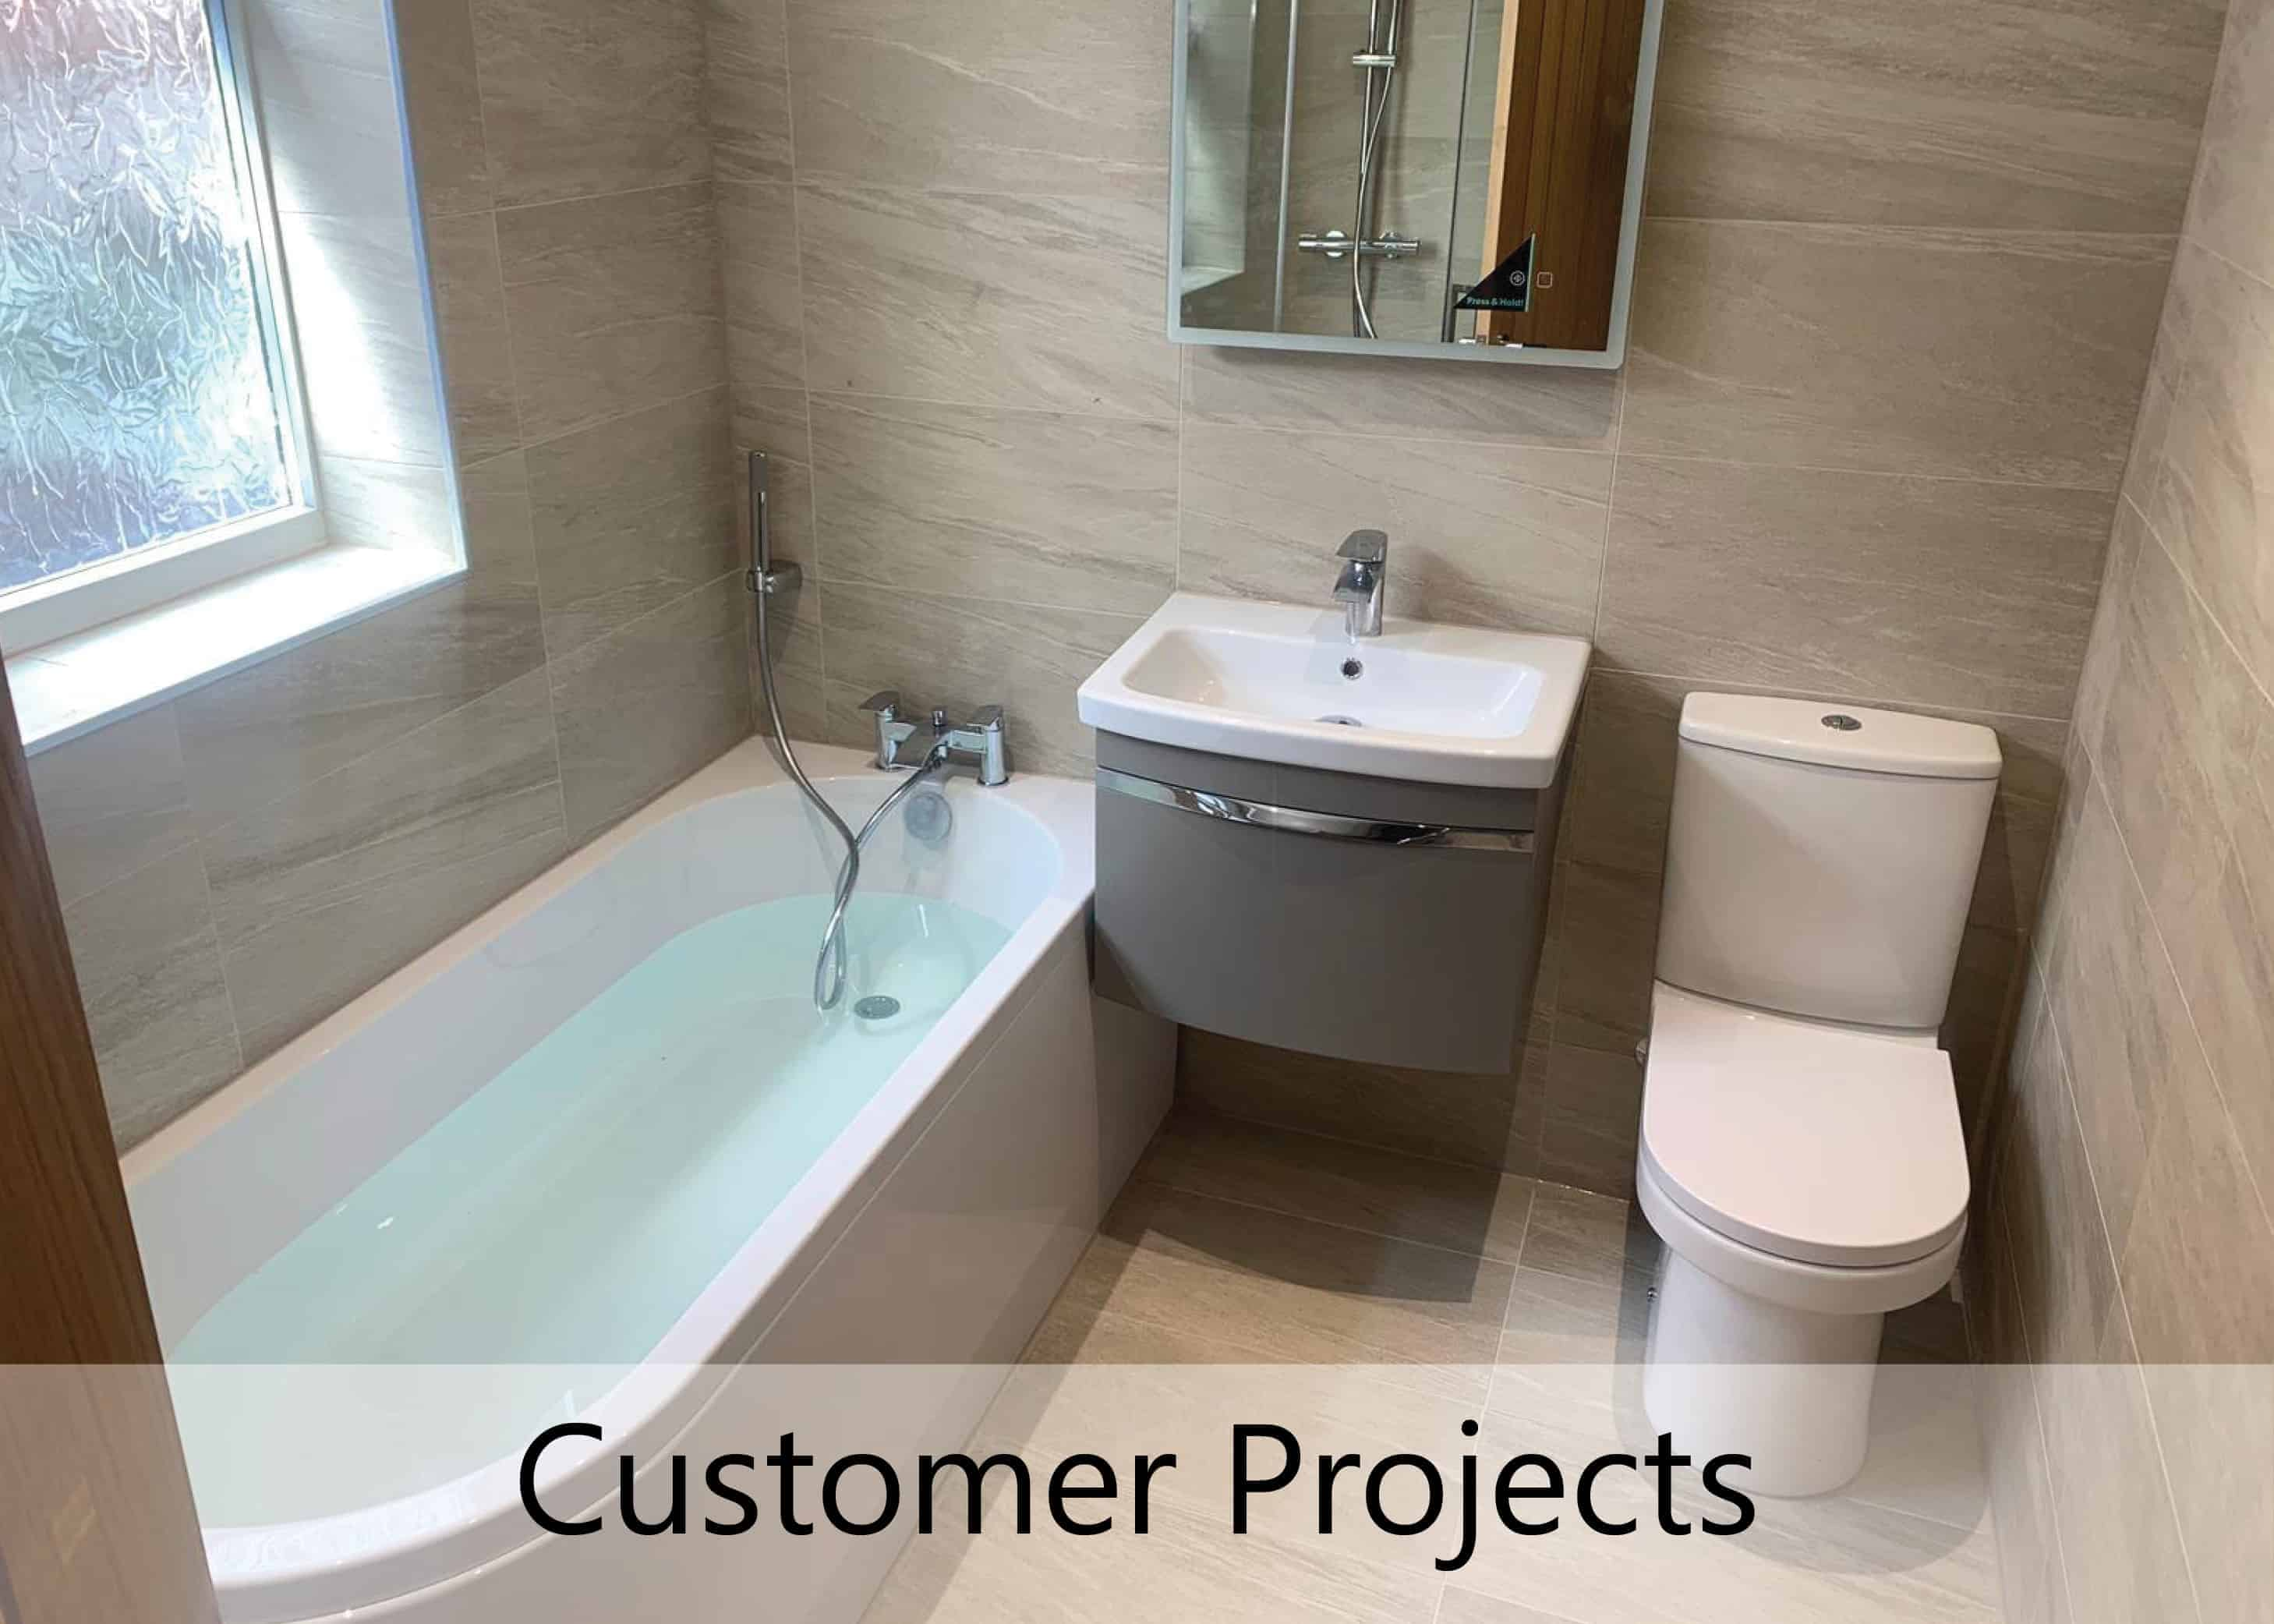 customer projects emc tiles customer photos submit images home renovation